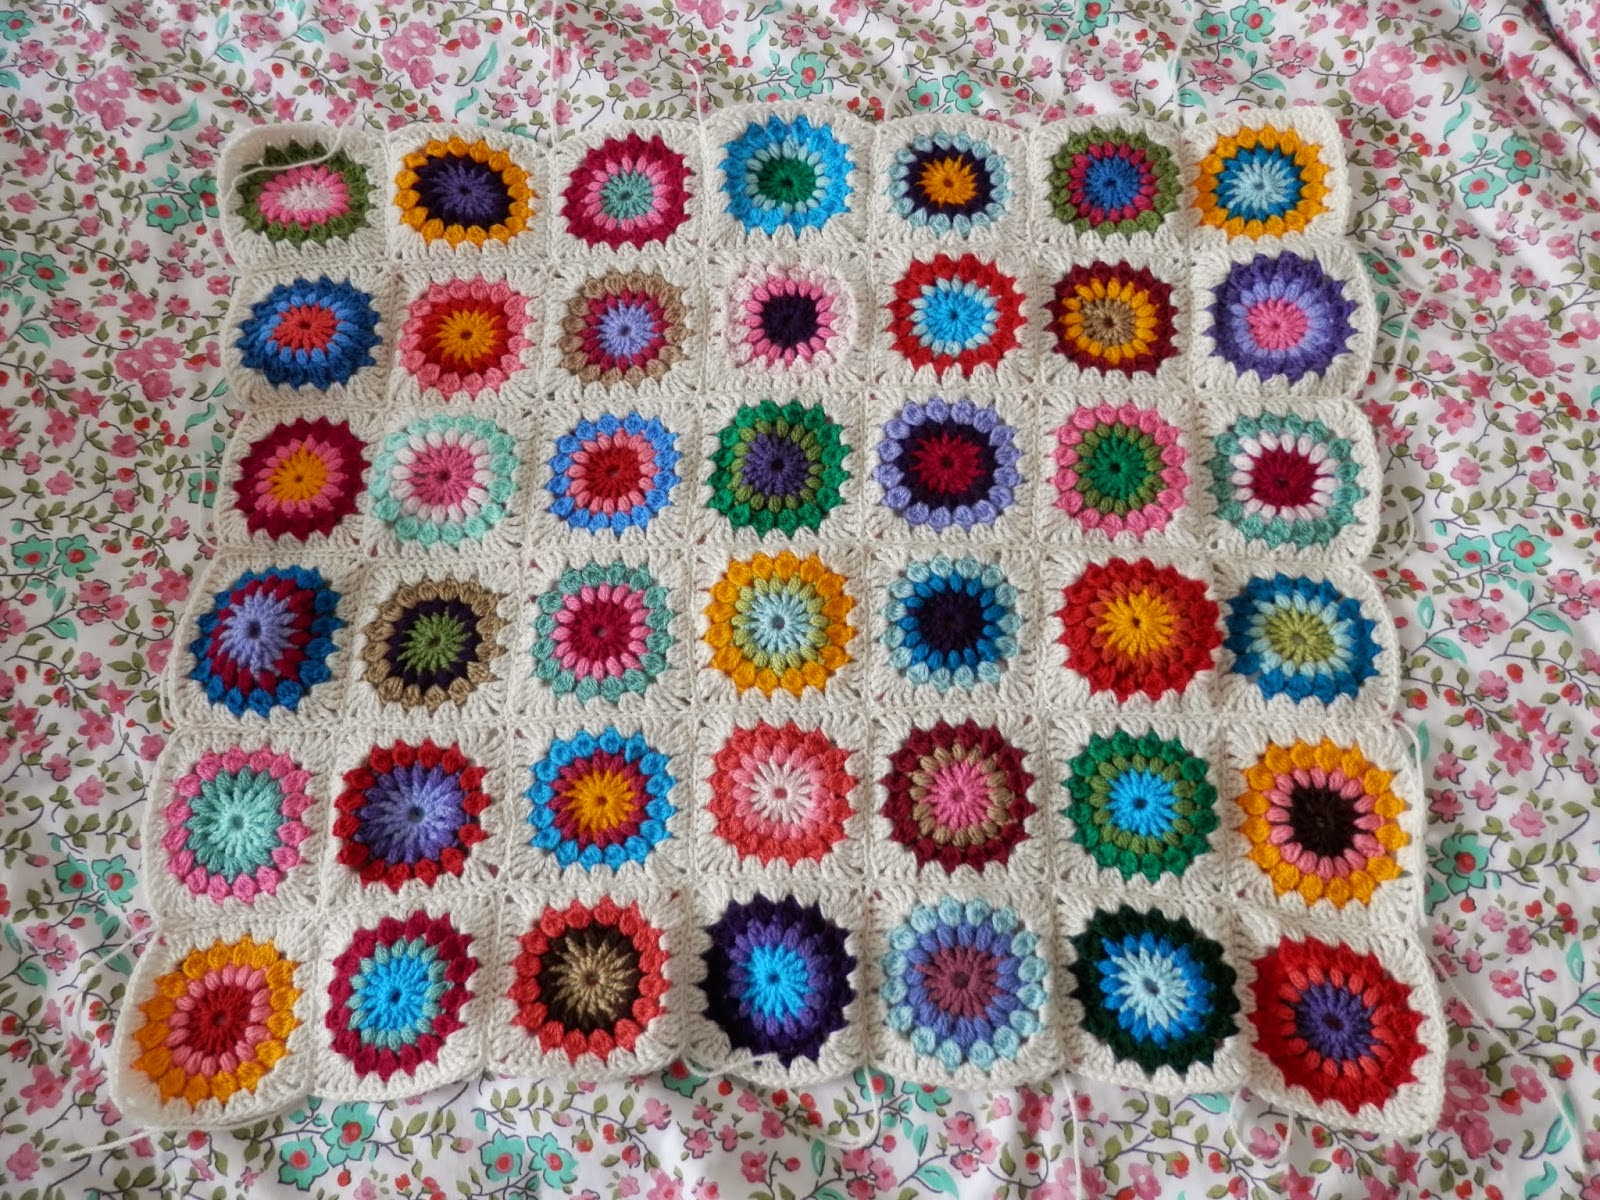 Mollie Makes Crochet Blanket secondhandsusie.blogspot.co.uk